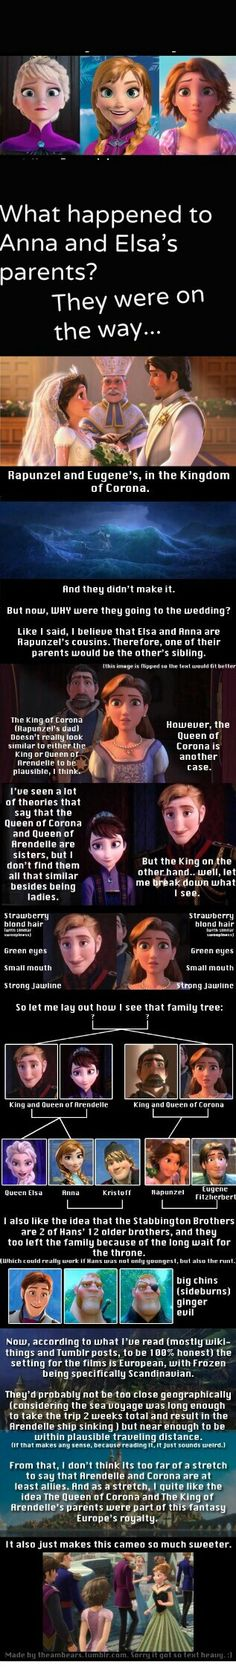 "Disney's ""Tangled"" and ""Frozen"" are connected."